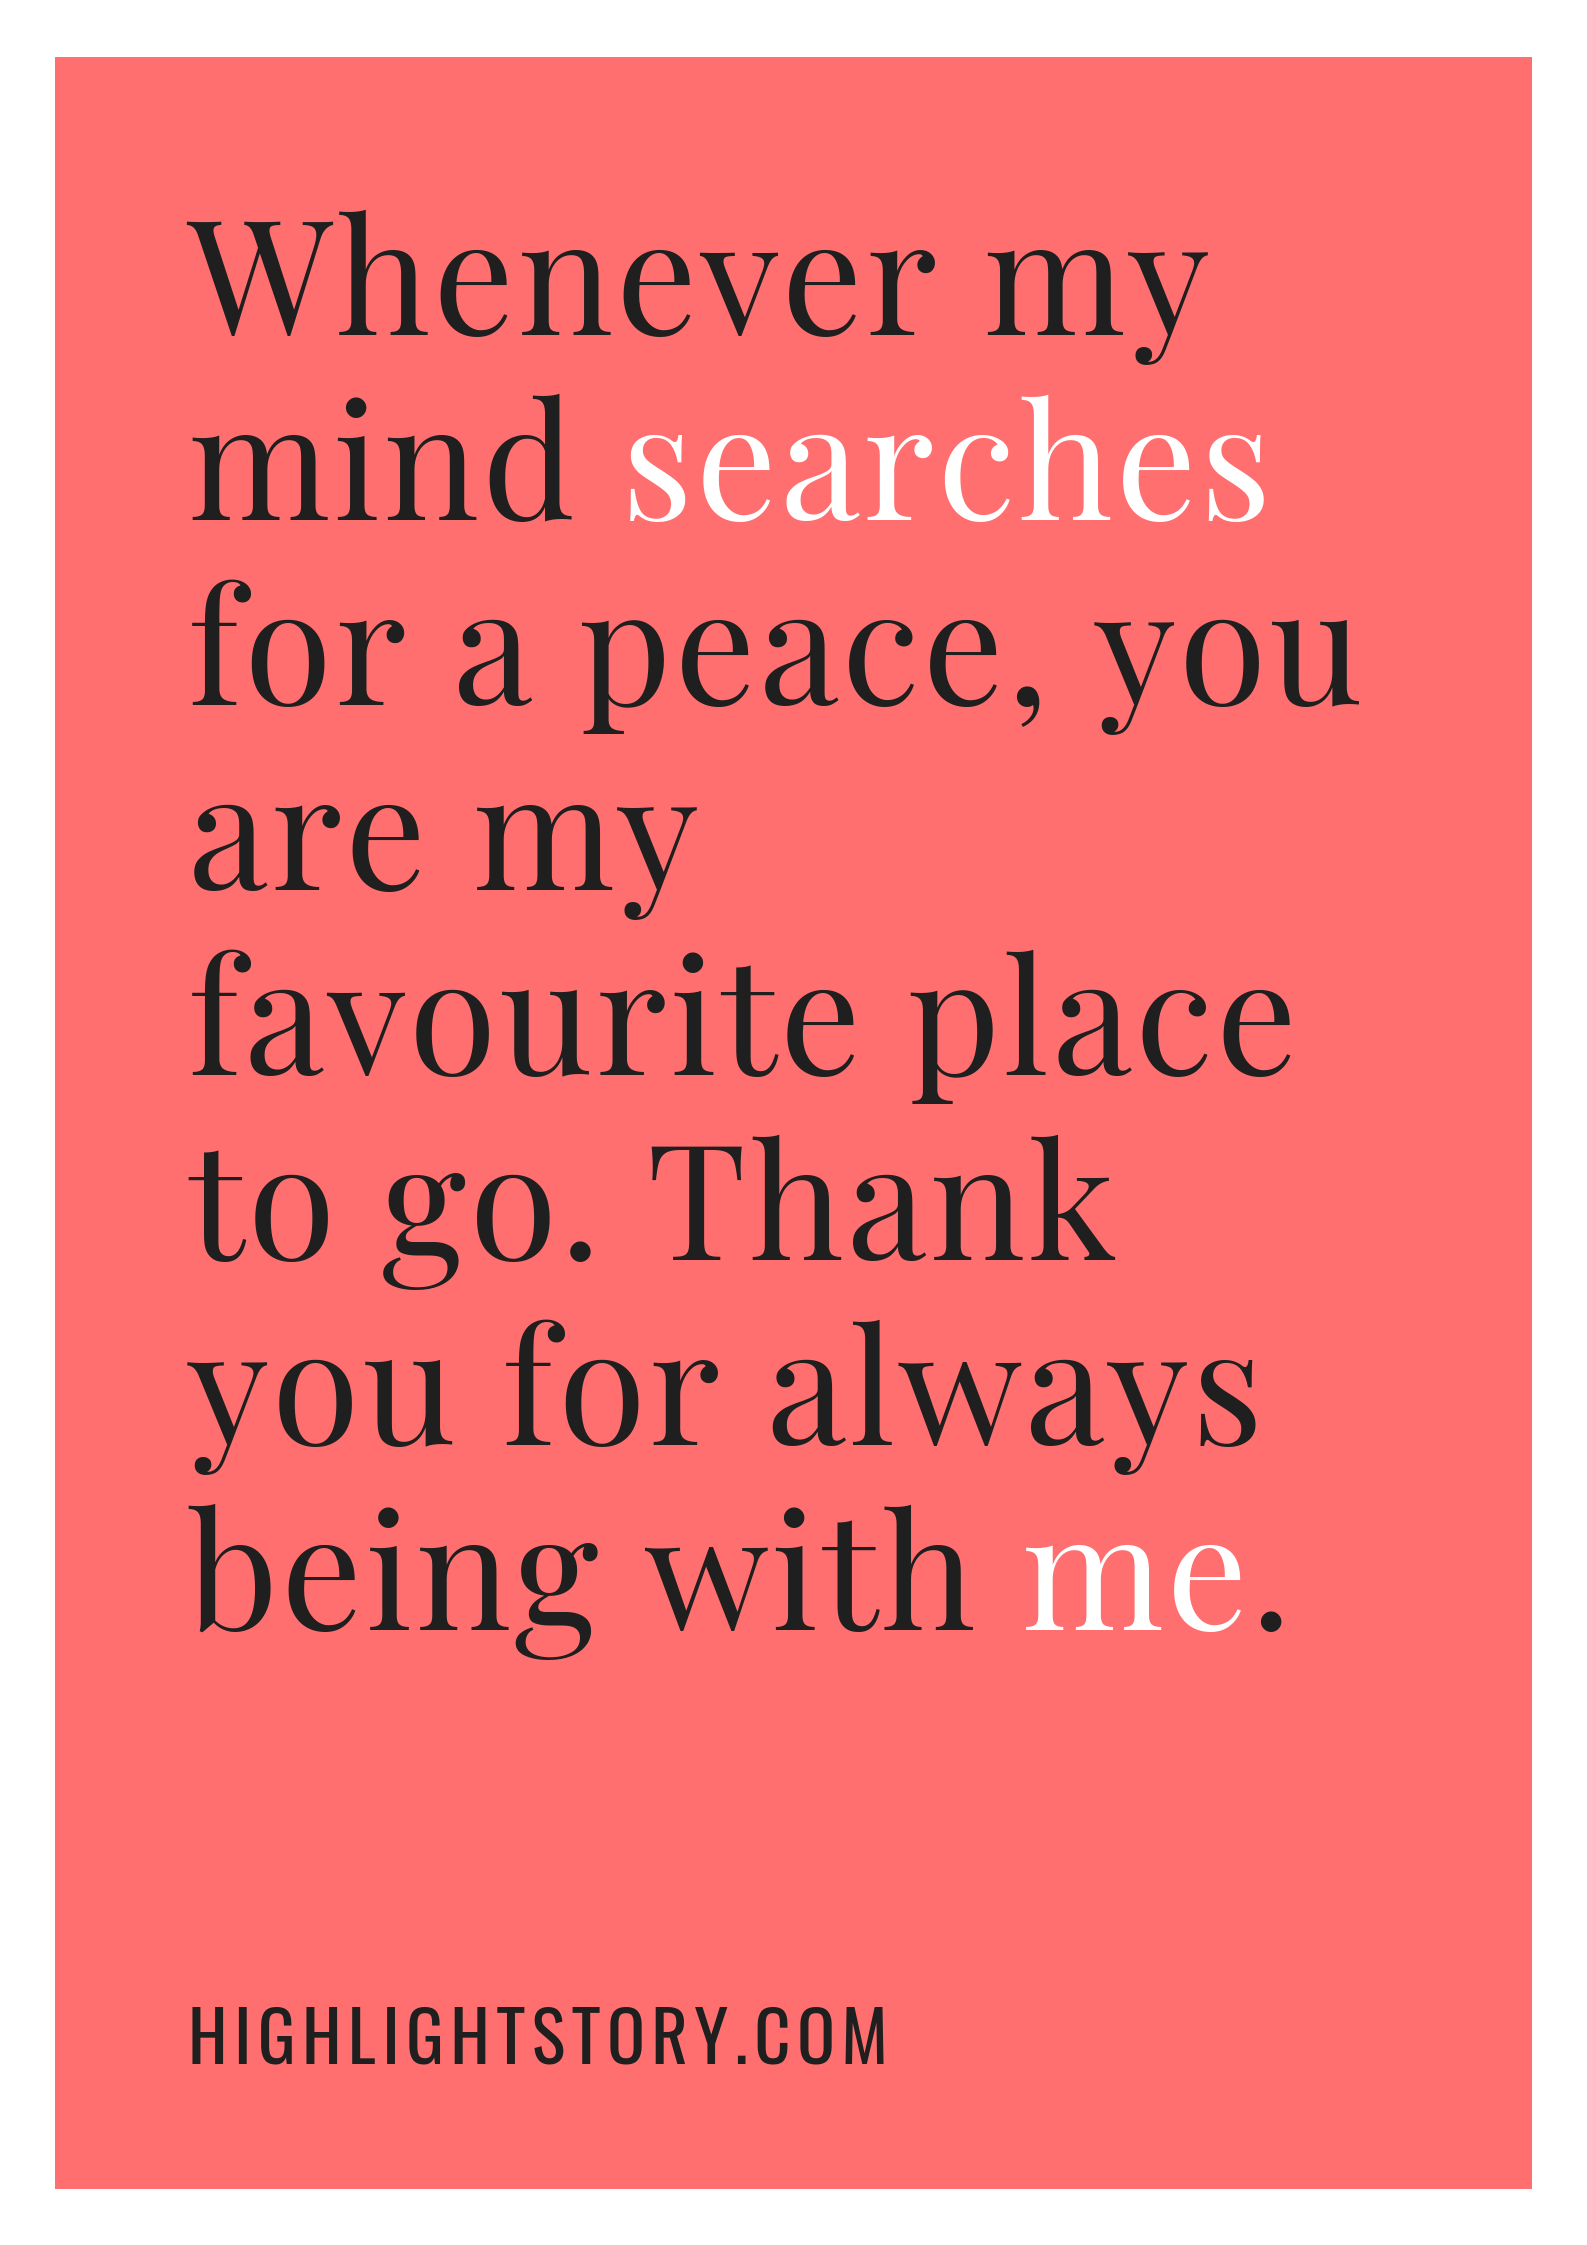 Whenever my mind searches for a peace, you are my favourite place to go. Thank you for always being with me.